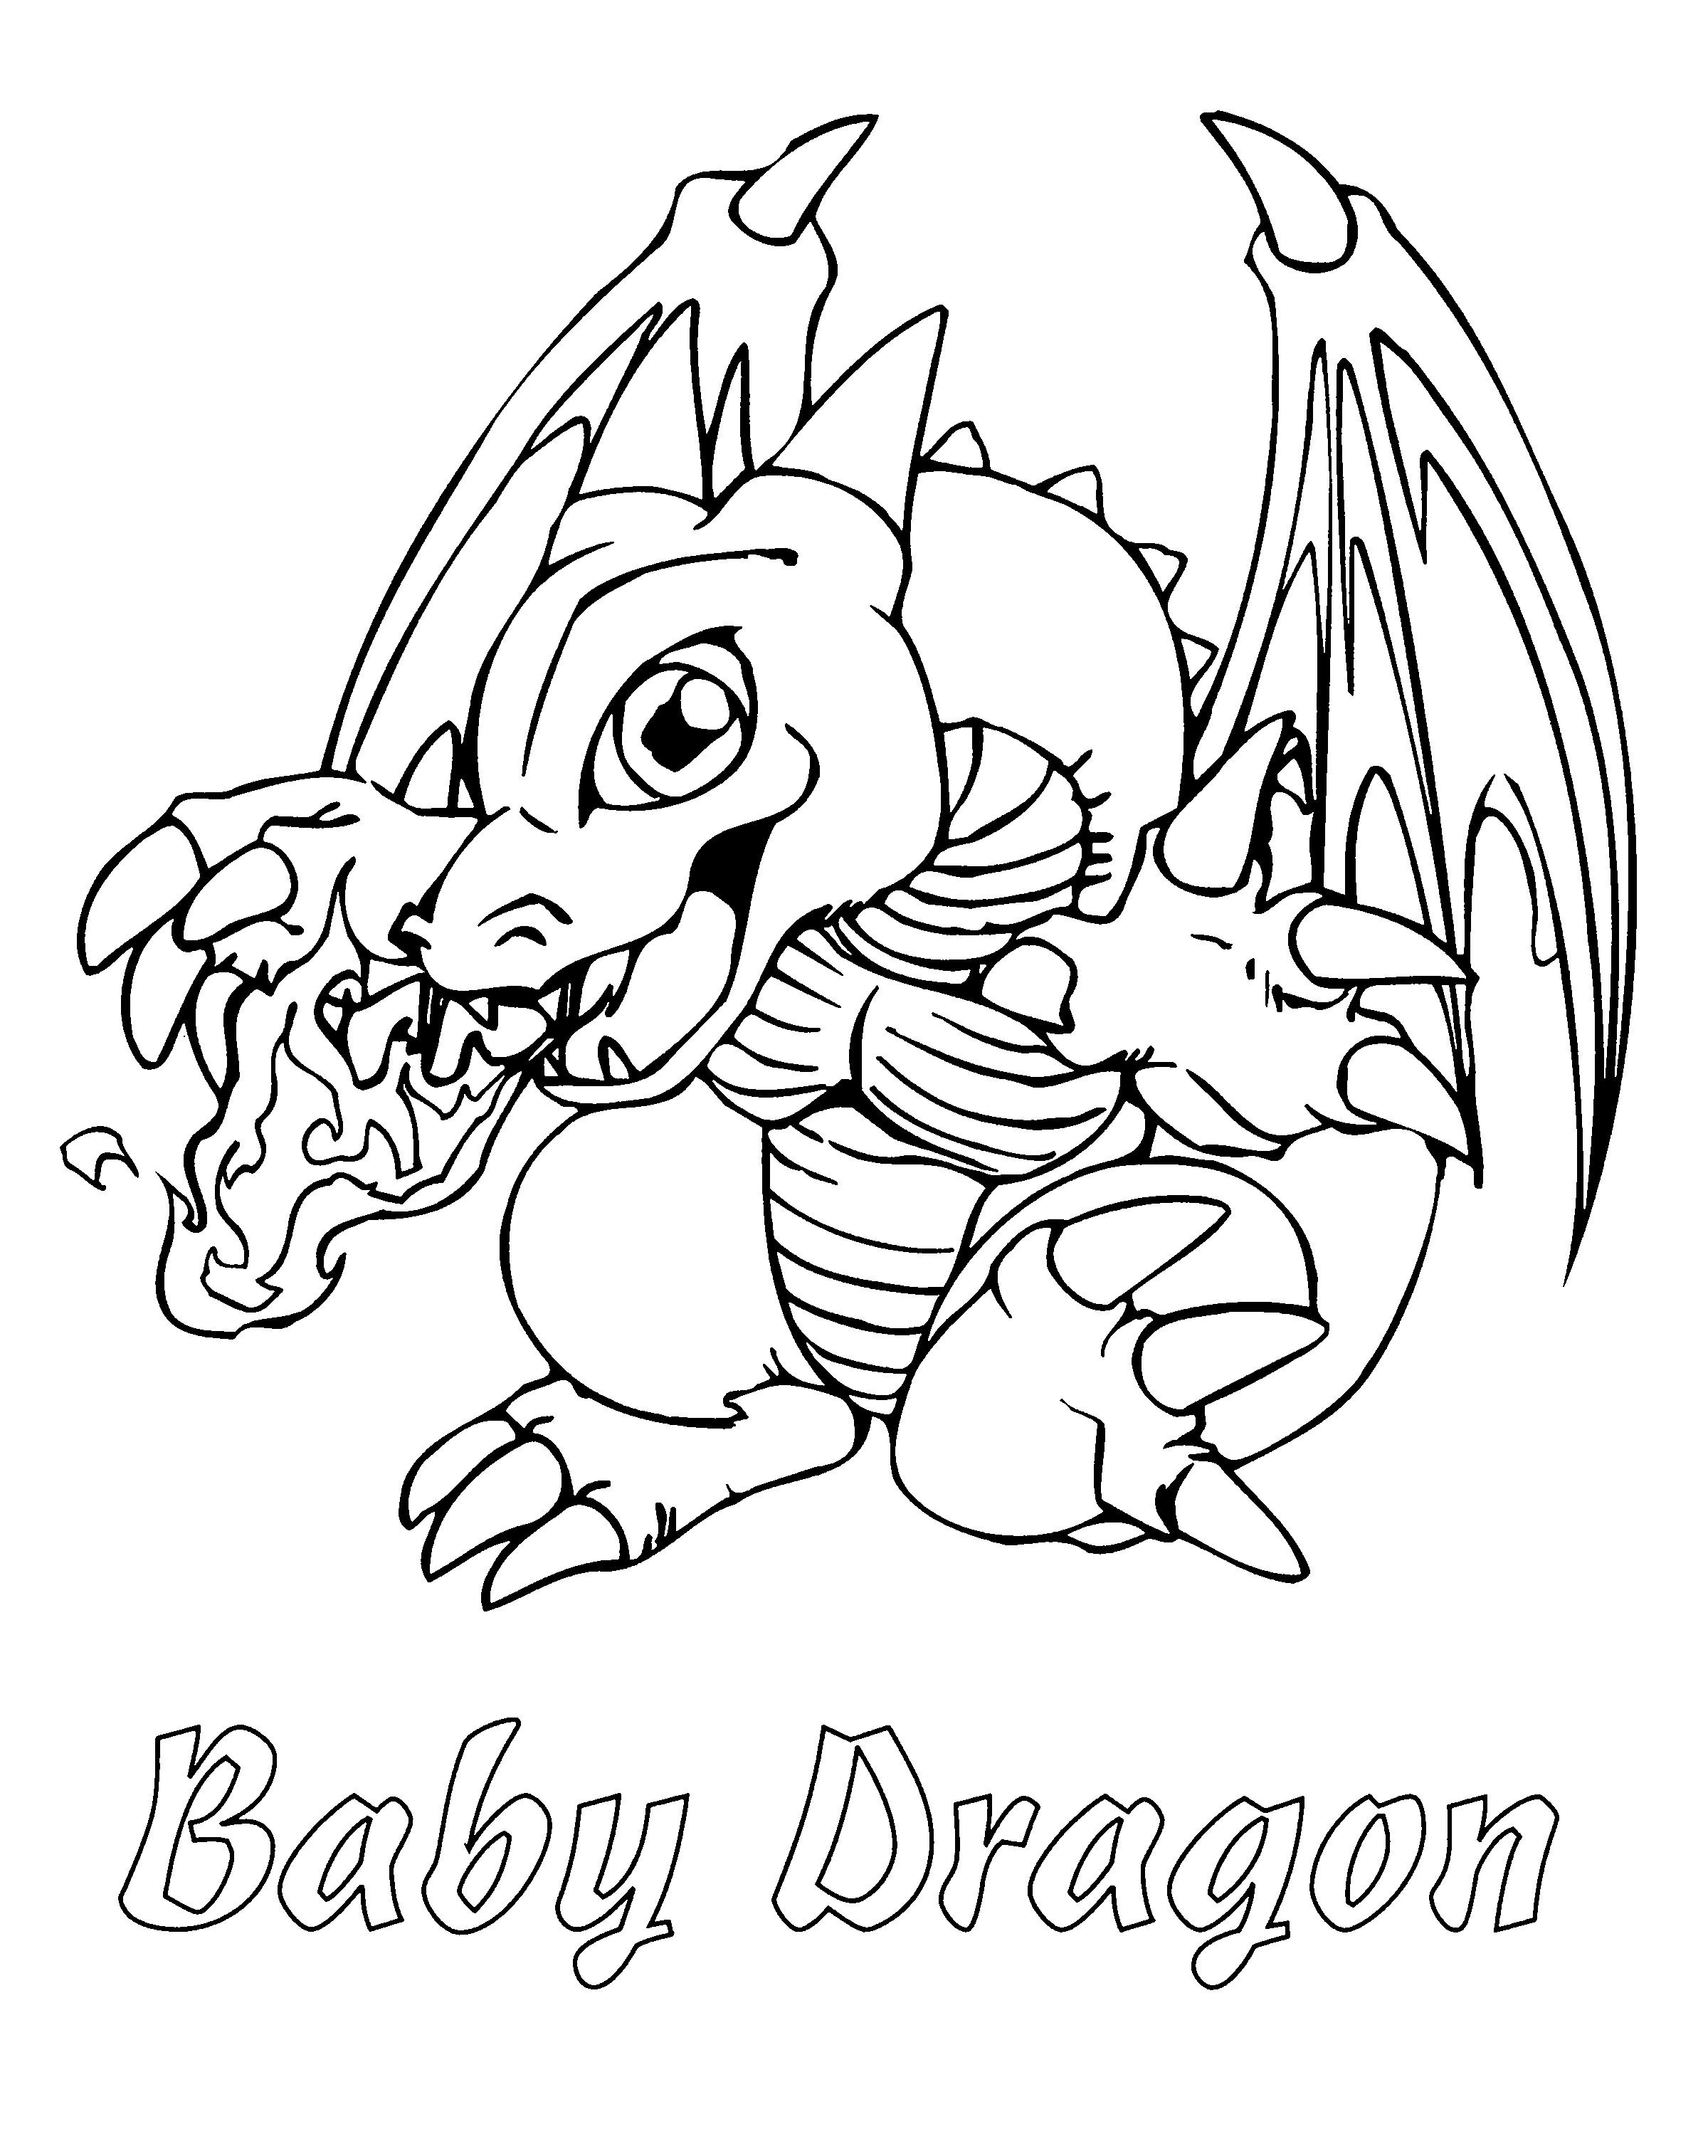 Free coloring pages yugioh - Printable Yugioh Coloring Pages All About Free Coloring Pages For Kids